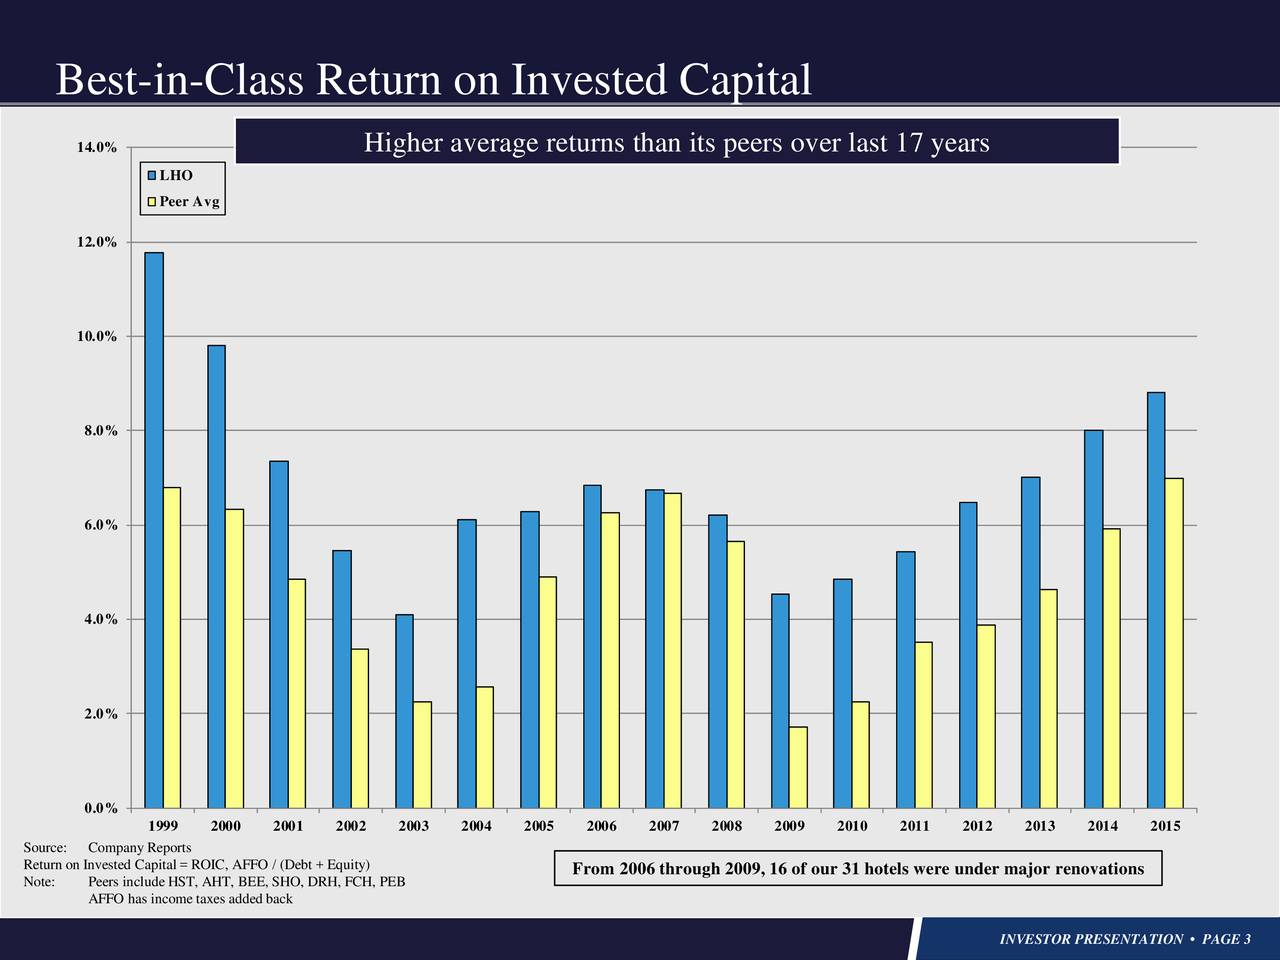 14.0% Higher average returns than its peers over last 17 years LHO Peer Avg 12.0% 10.0% 8.0% 6.0% 4.0% 2.0% 0.0% 1999 2000 2001 2002 2003 2004 2005 2006 2007 2008 2009 2010 2011 2012 2013 2014 2015 Source: Company Reports Return on Invested Capital = ROIC, AFFO / (Debt + Equity) From 2006 through 2009, 16 of our 31 hotels were under major renovations Note: Peers include HST, AHT, BEE, SHO, DRH, FCH, PEB AFFO has income taxes added back INVESTOR PRESENTATION  PAGE 3